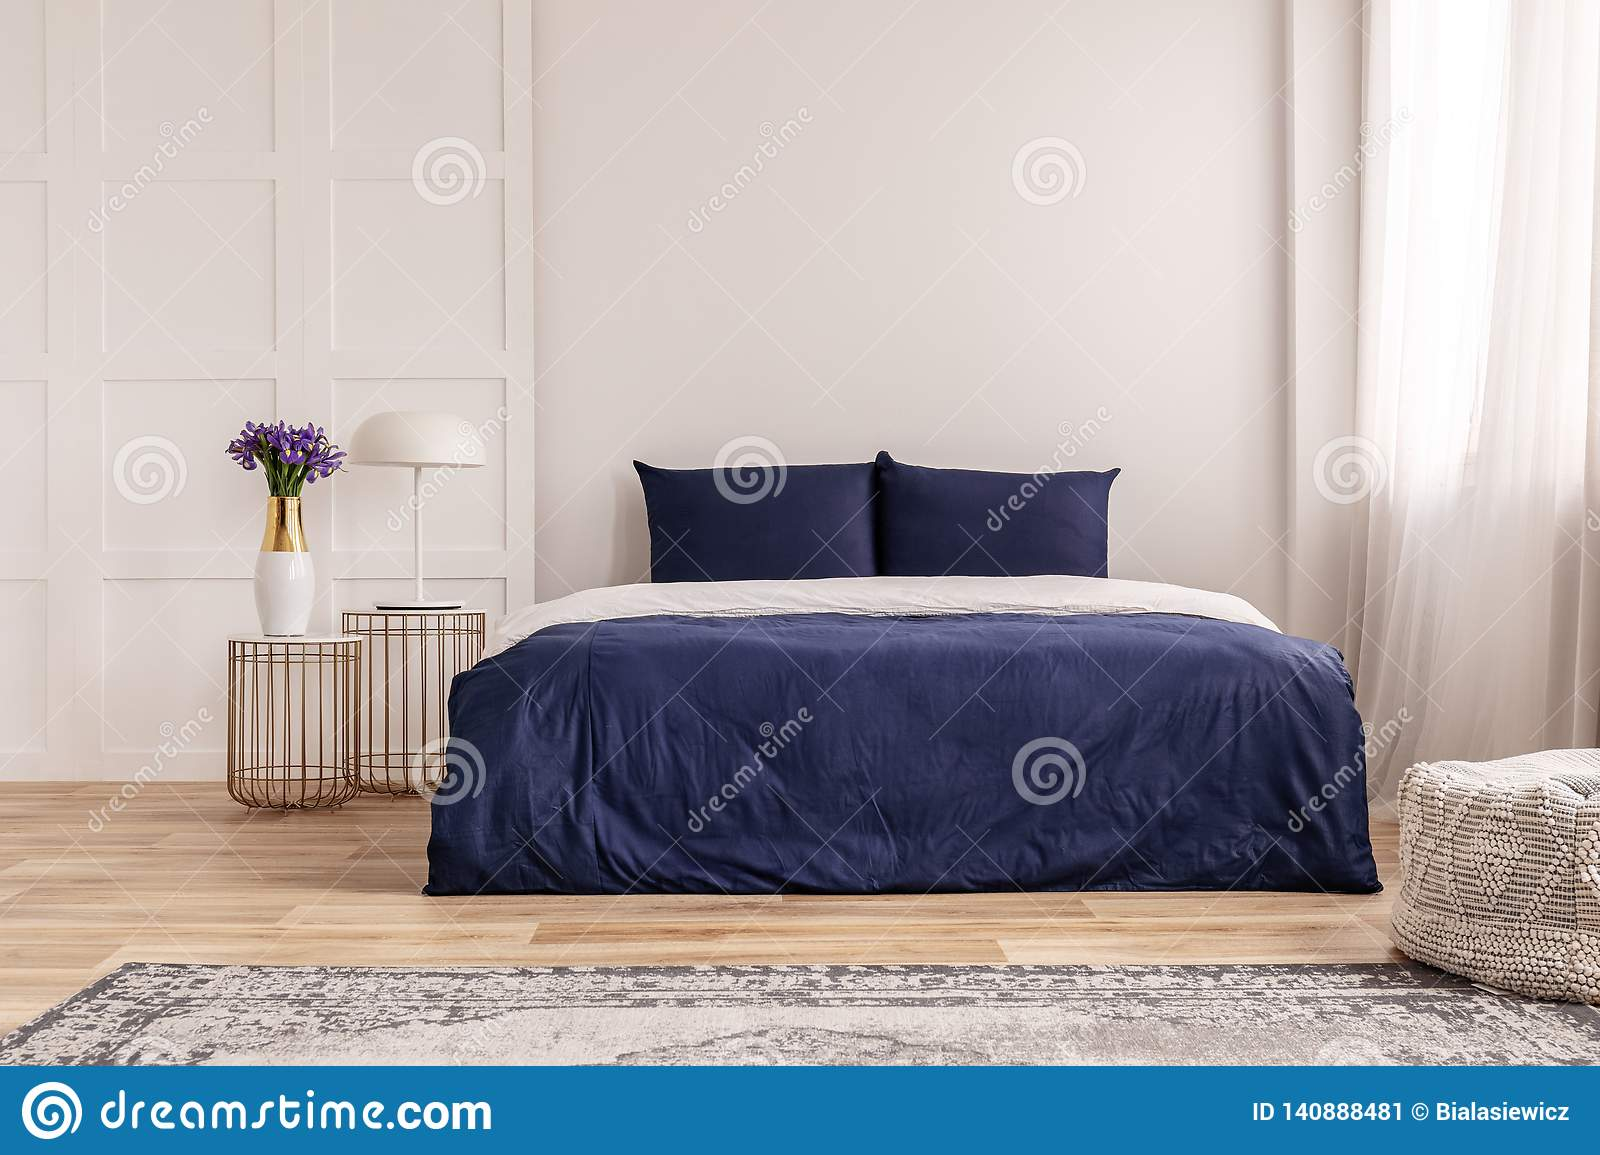 Simple Navy Blue And White Bedroom Interior Design Stock ...